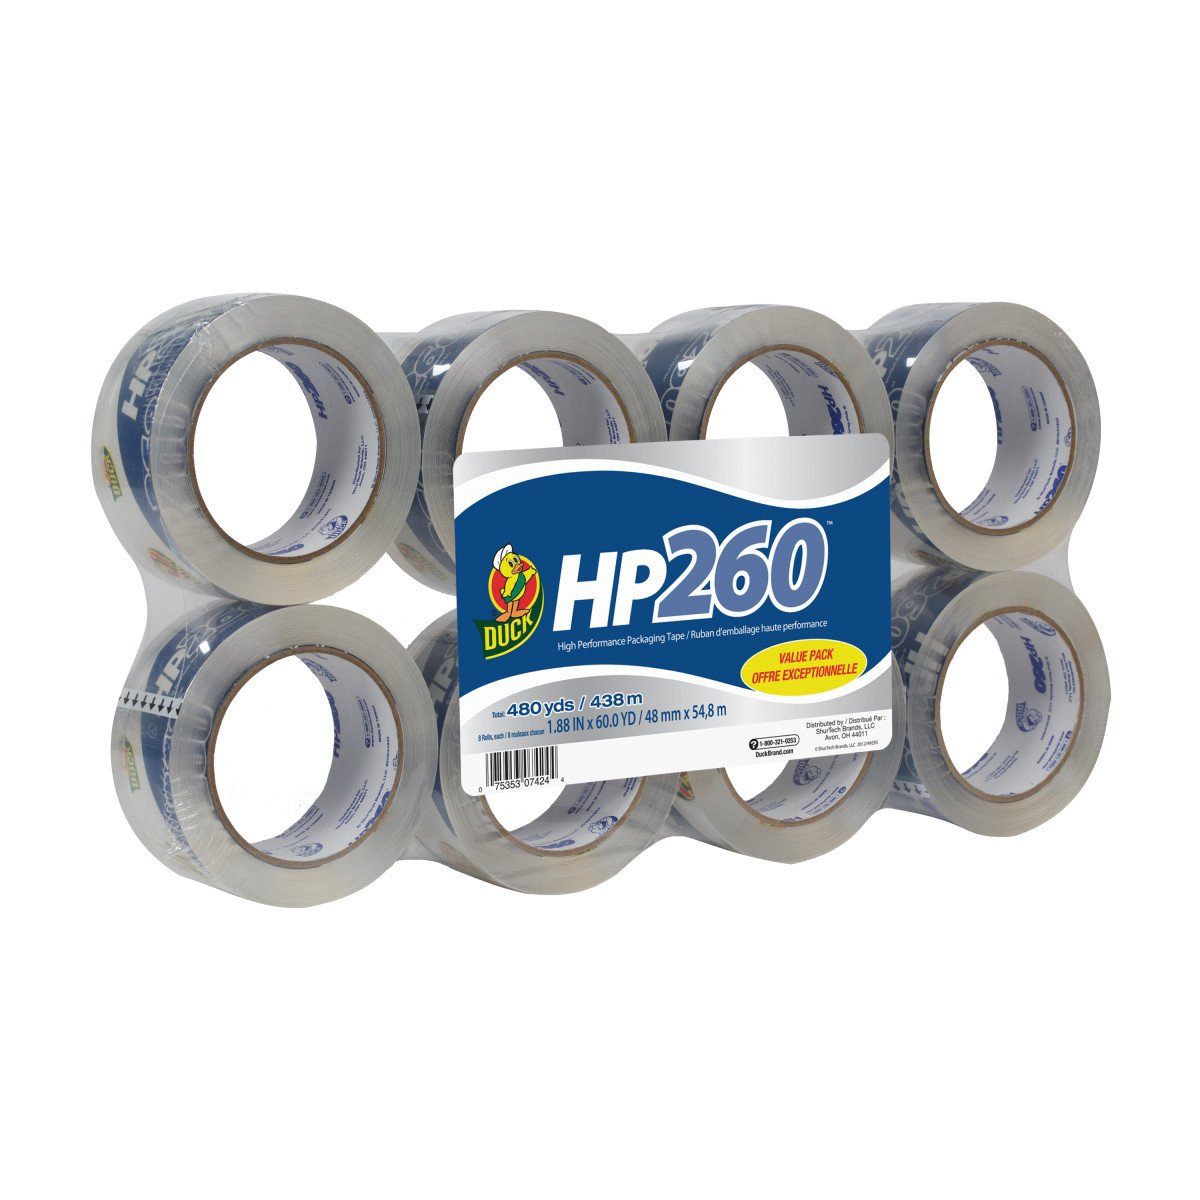 Duck HP260 Packing Tape Refill, 8 Rolls, 1.88 Inch x 60 Yard, Clear (1067839) by Duck (Image #1)